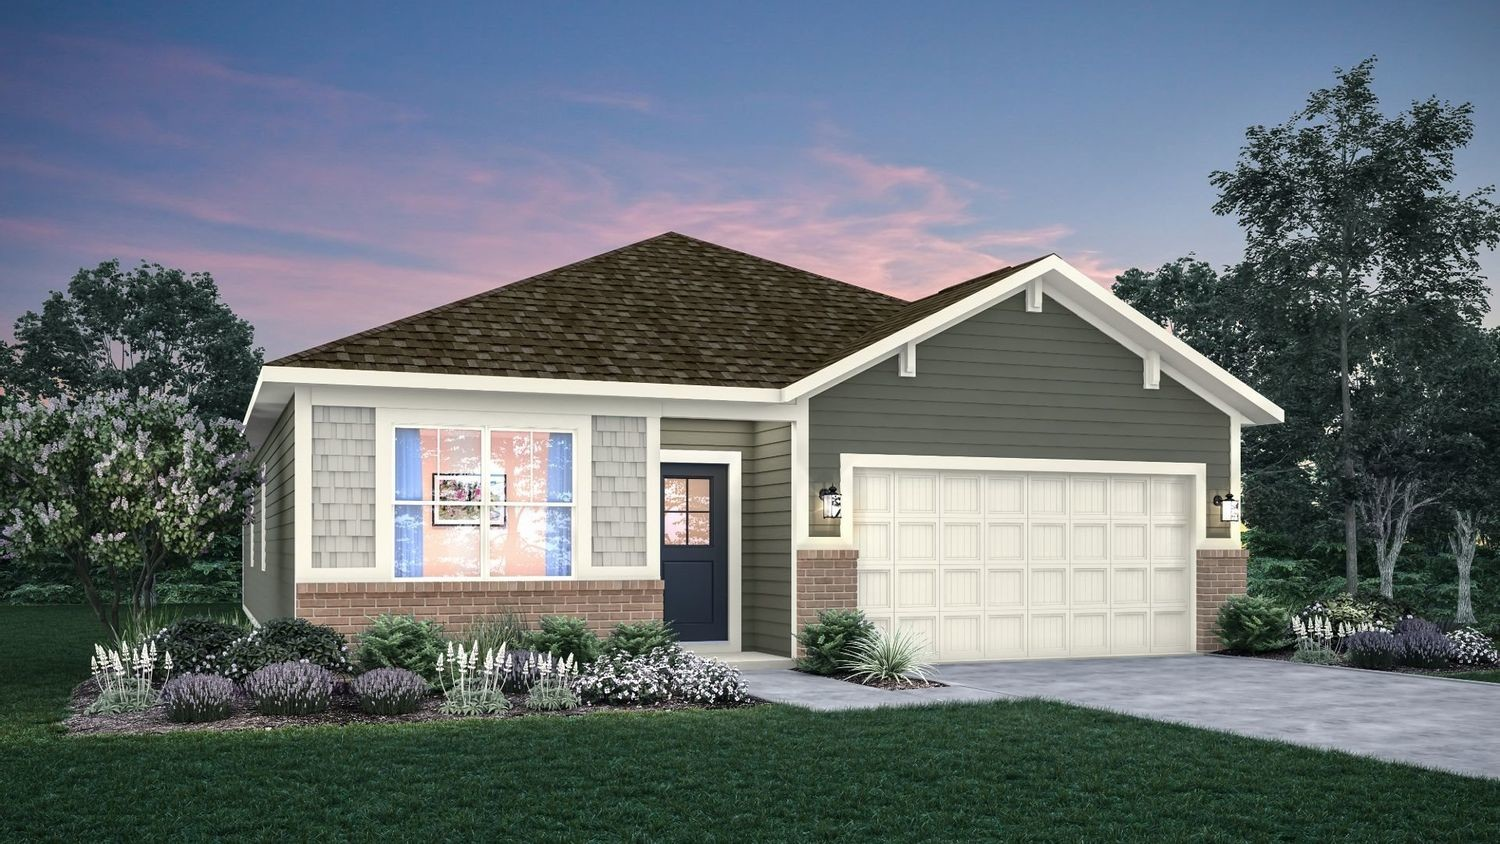 Ready To Build Home In Grassy Manor Community